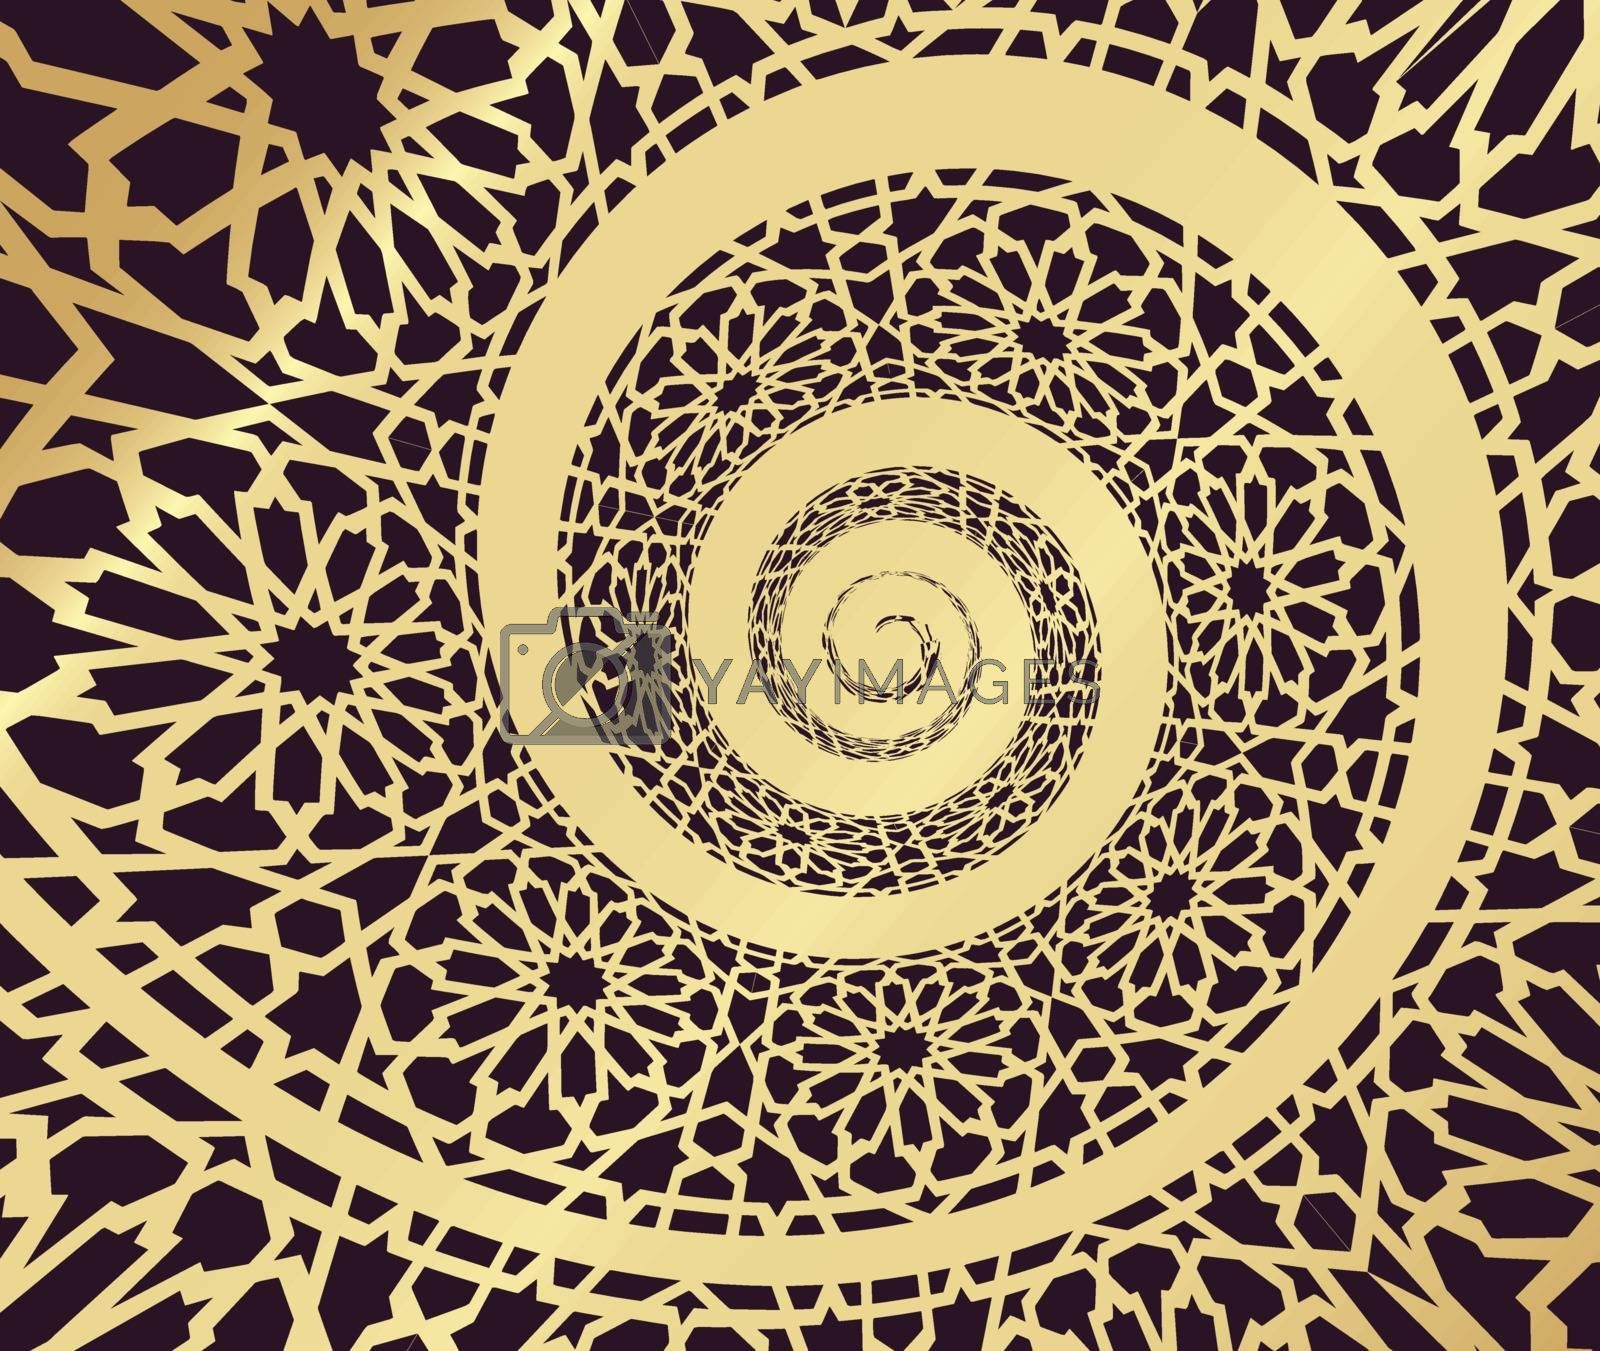 Royalty free image of Islamic pattern, swirled in 3d spiral shape by sermax55